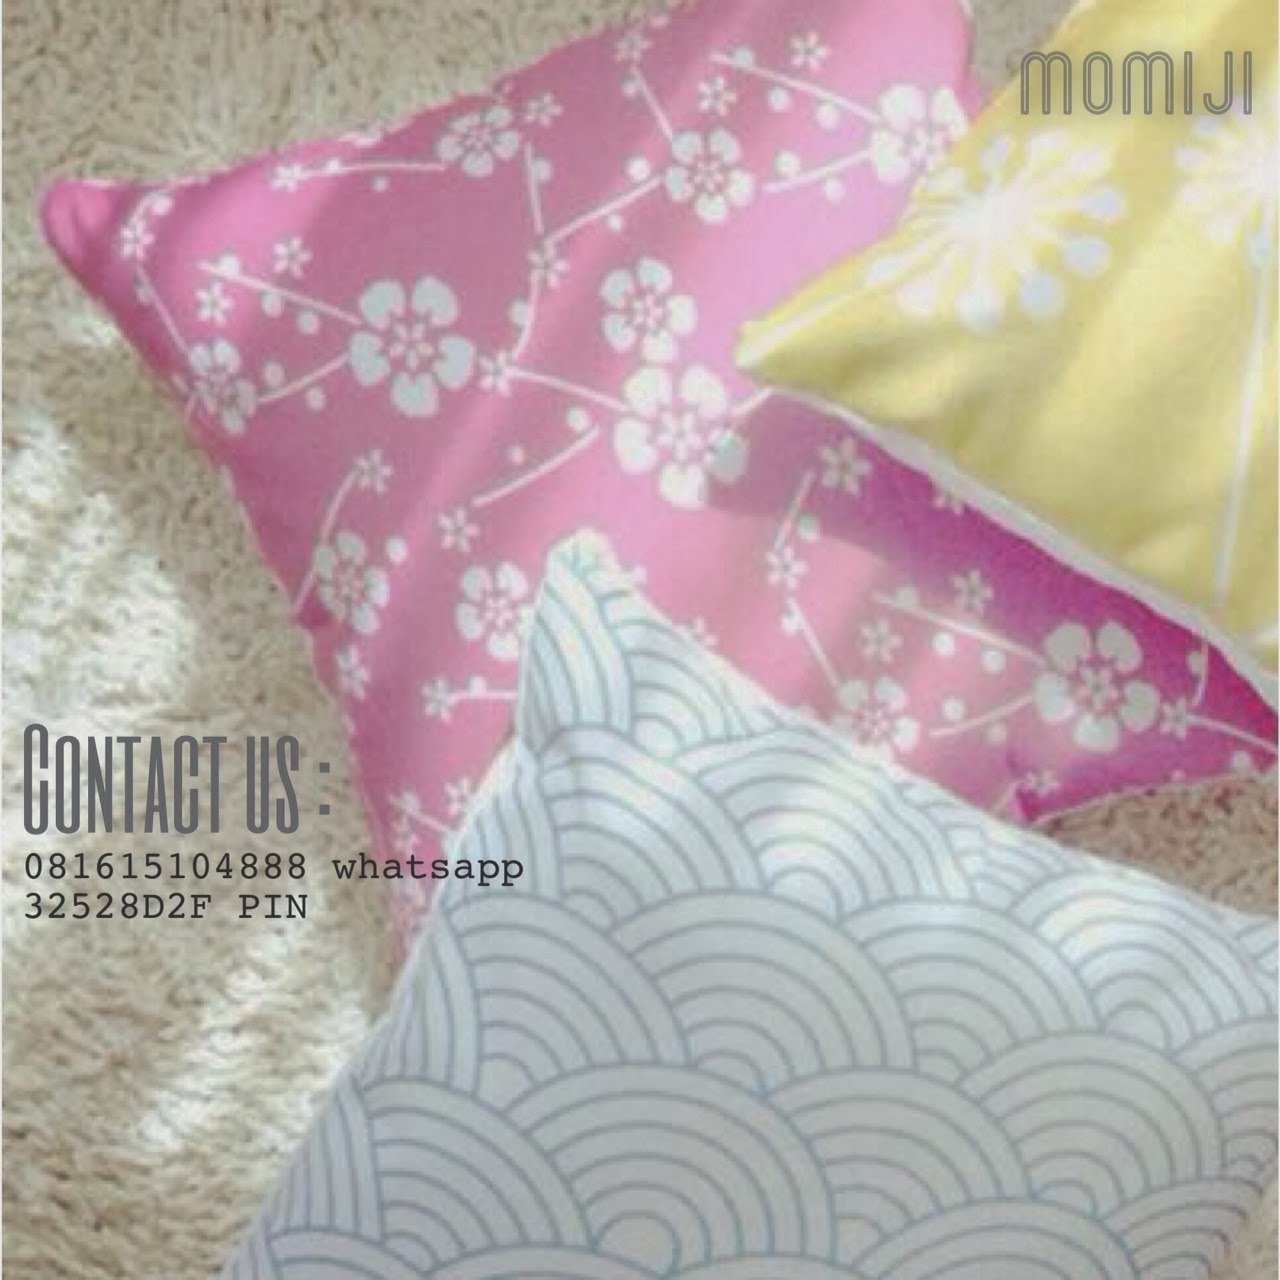 Momiji - for everything handmade